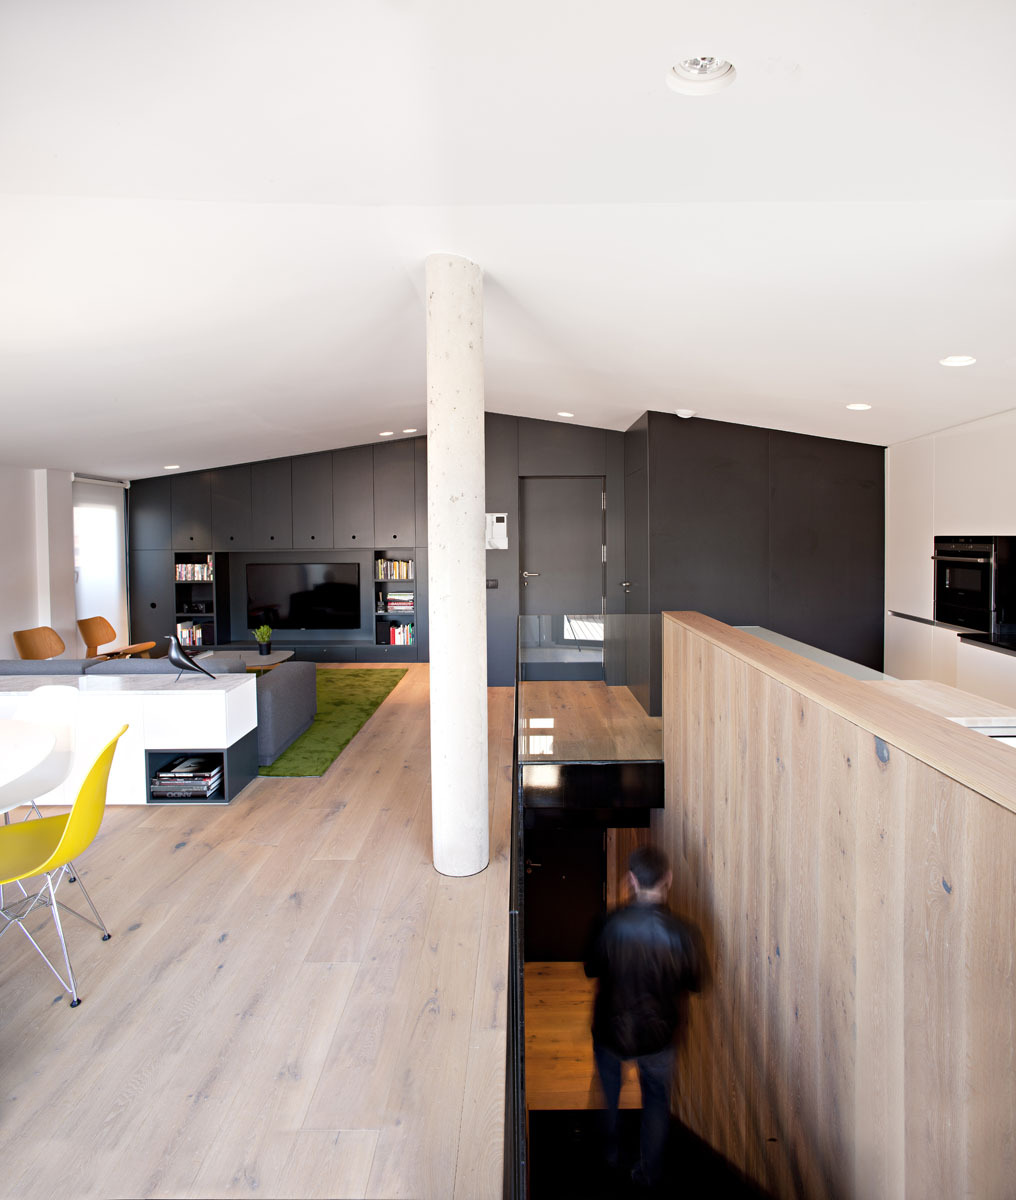 Level with Simple Dining Space and the Modern Kitchen